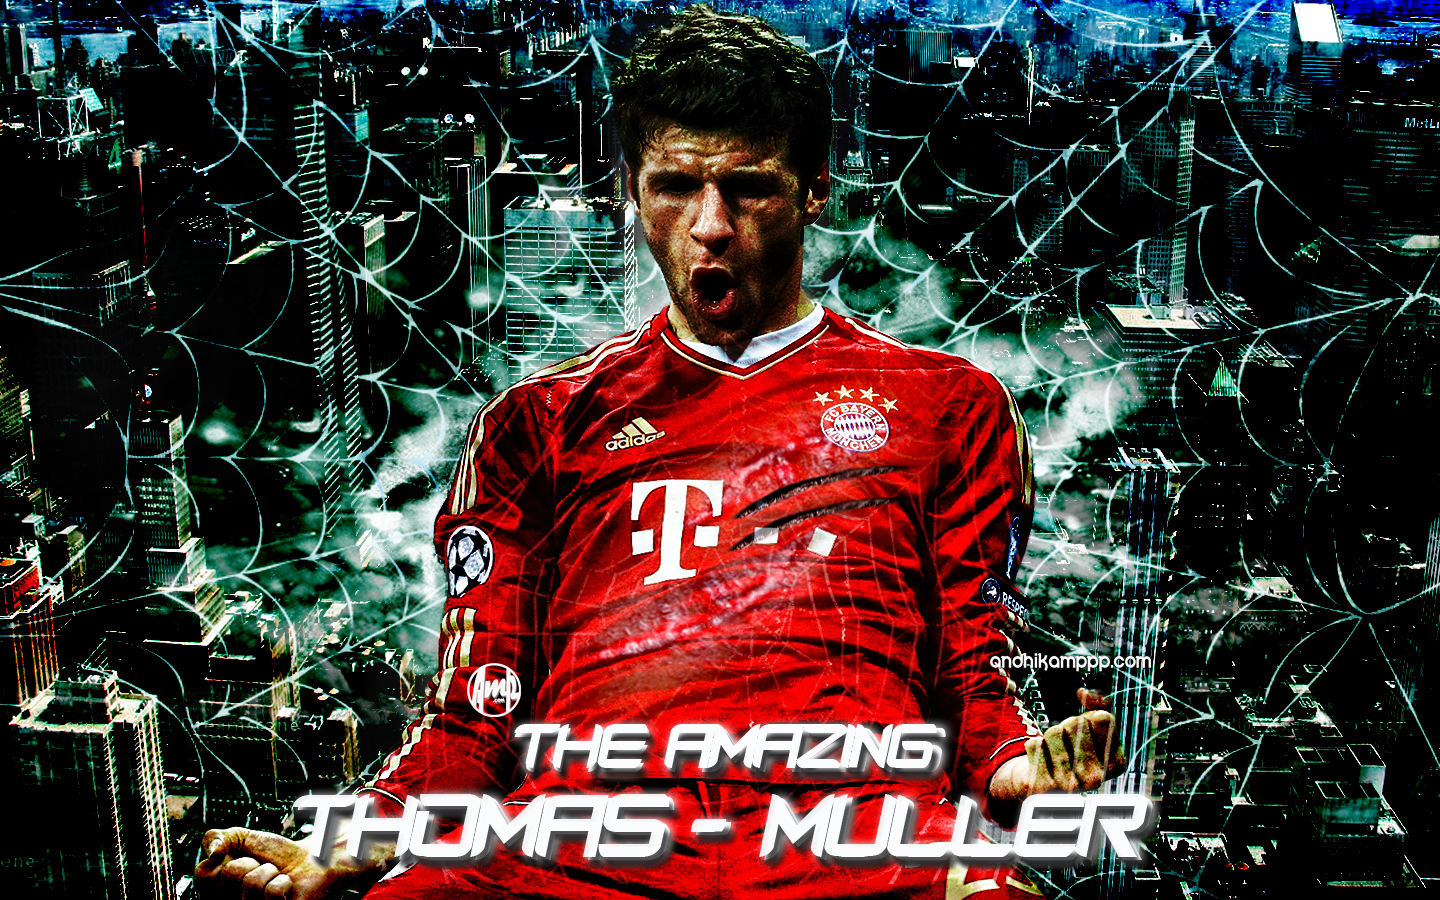 THOMAS MULLER My Wallpaper Blog Andhikampppcom